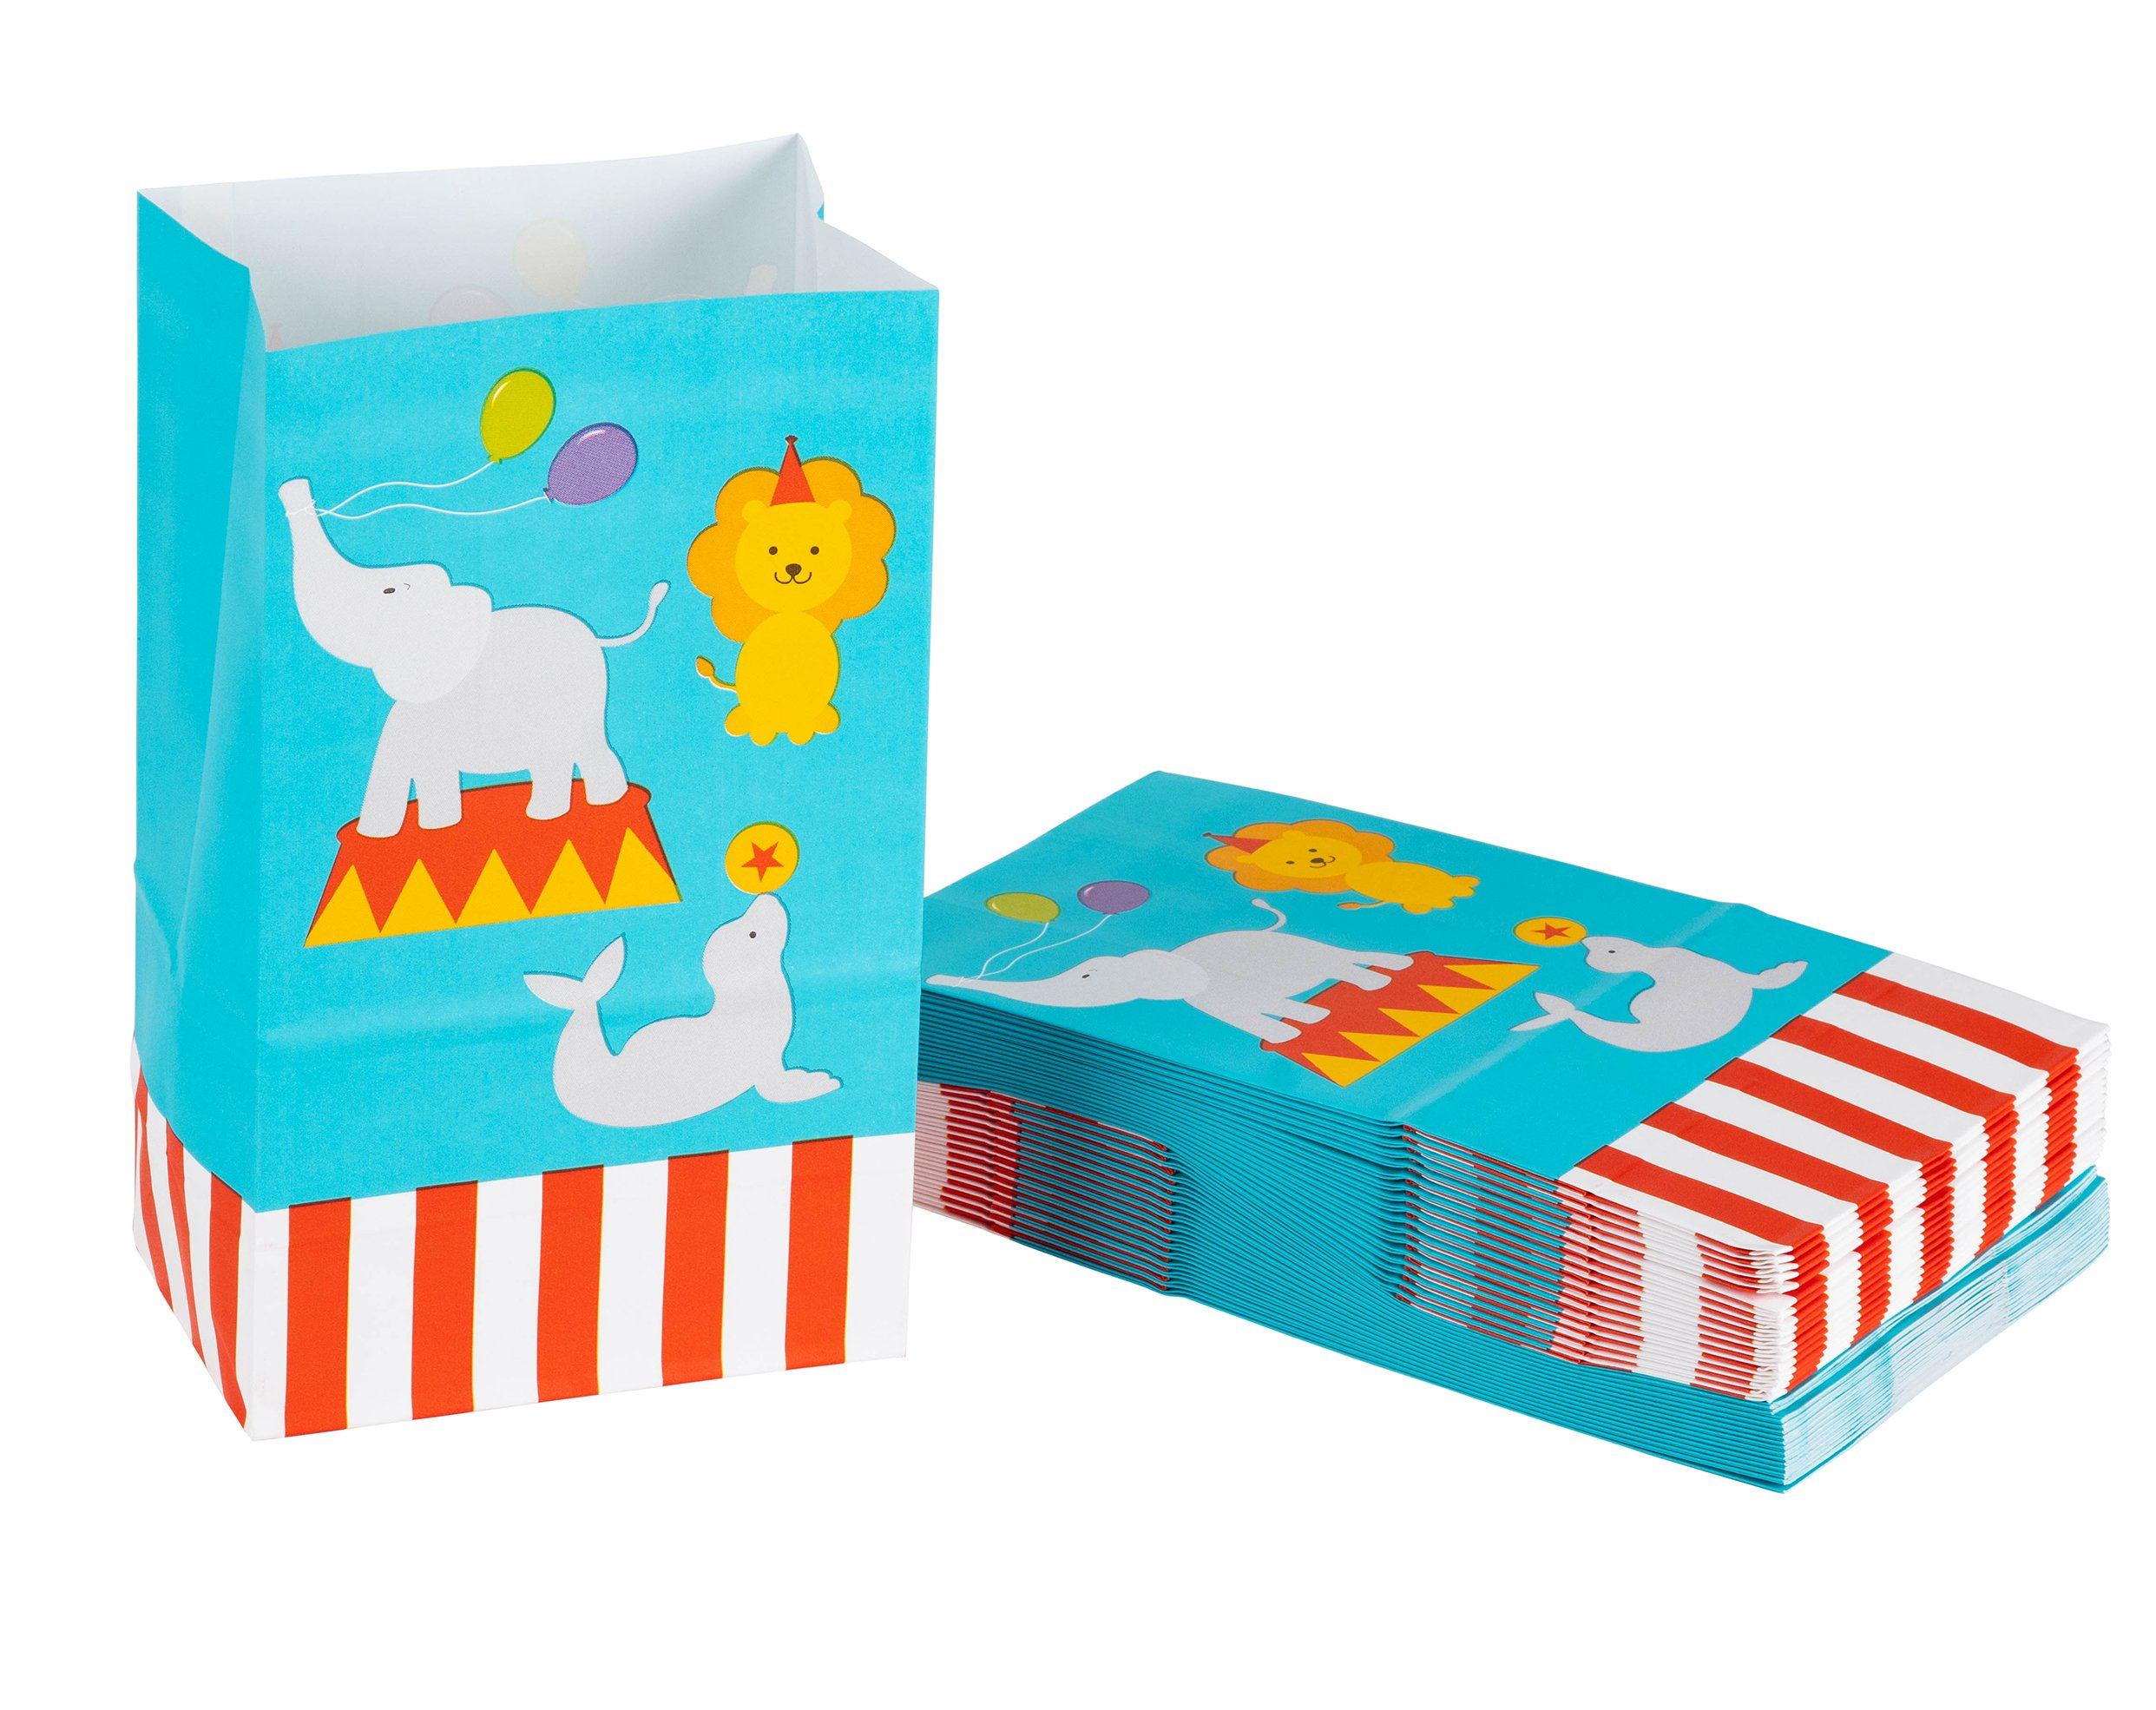 Party Treat Bags - 36-Pack Gift Bags, Circus Party Supplies, Paper Favor Bags, Recyclable Goodie Bags for Kids, Circus Animals Design, 5.2 x 8.7 x 3.3 Inches